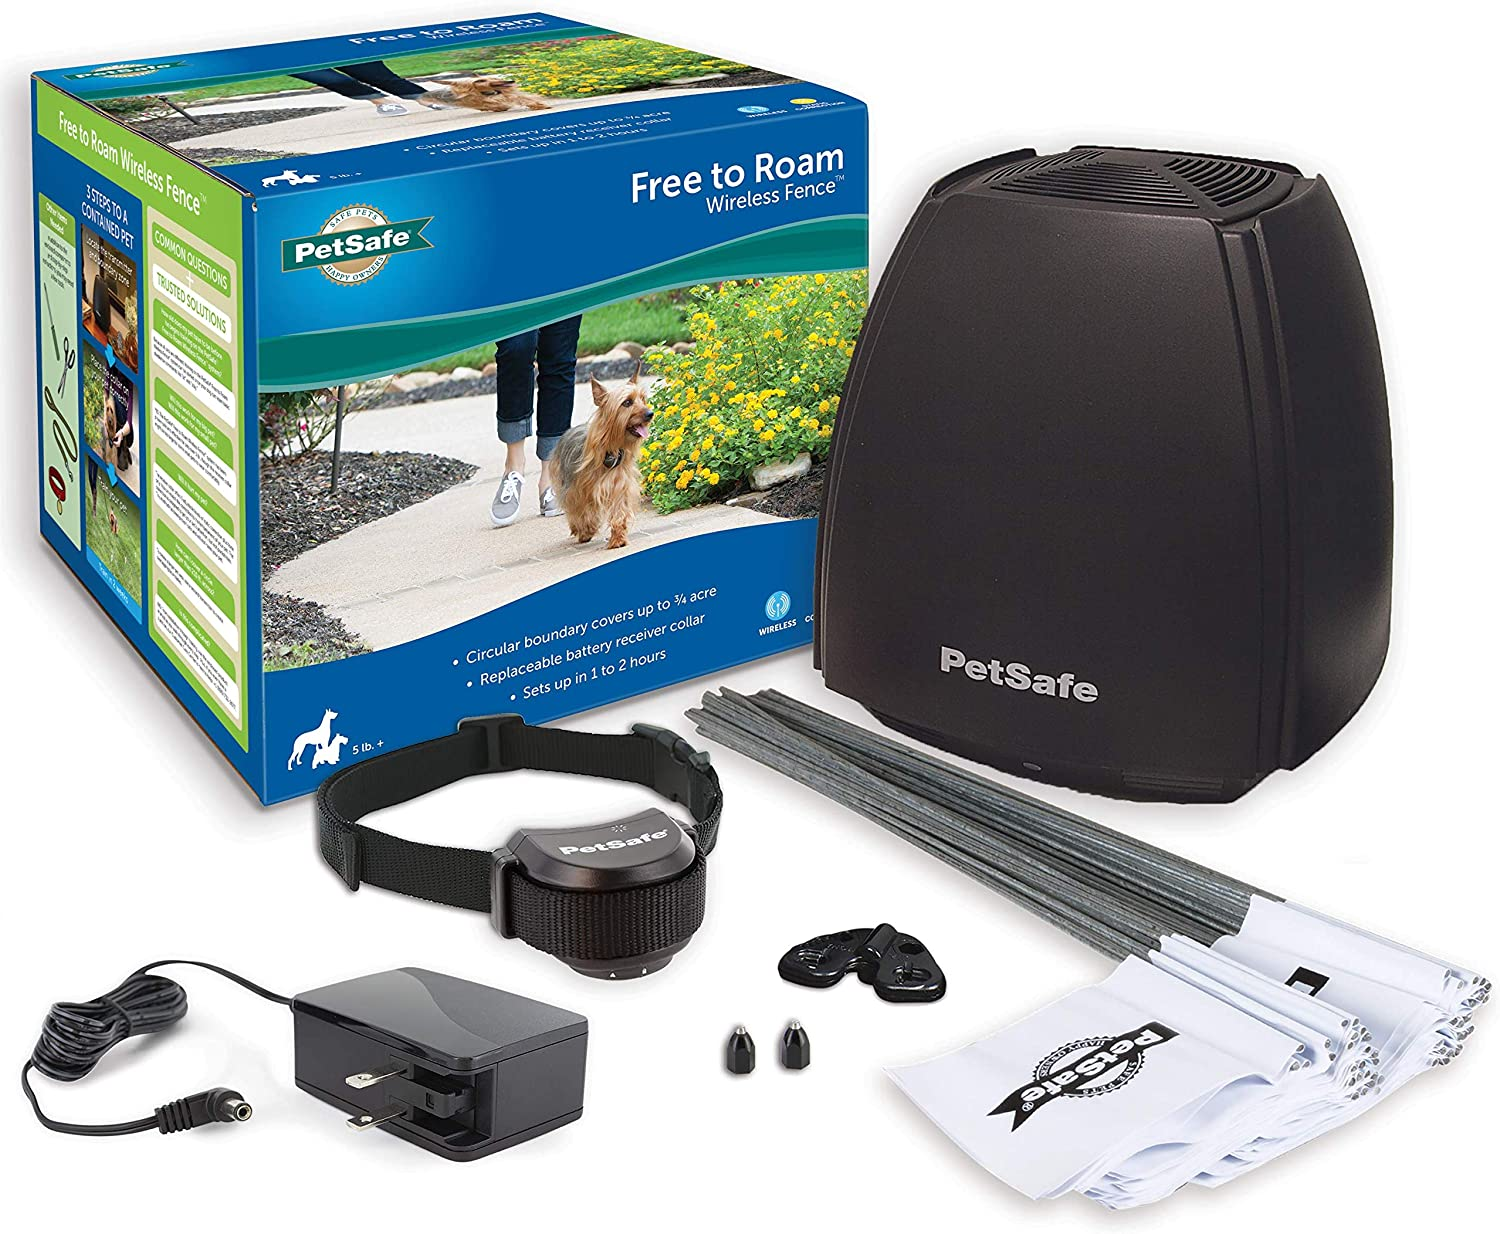 PetSafe Free to Roam Dog